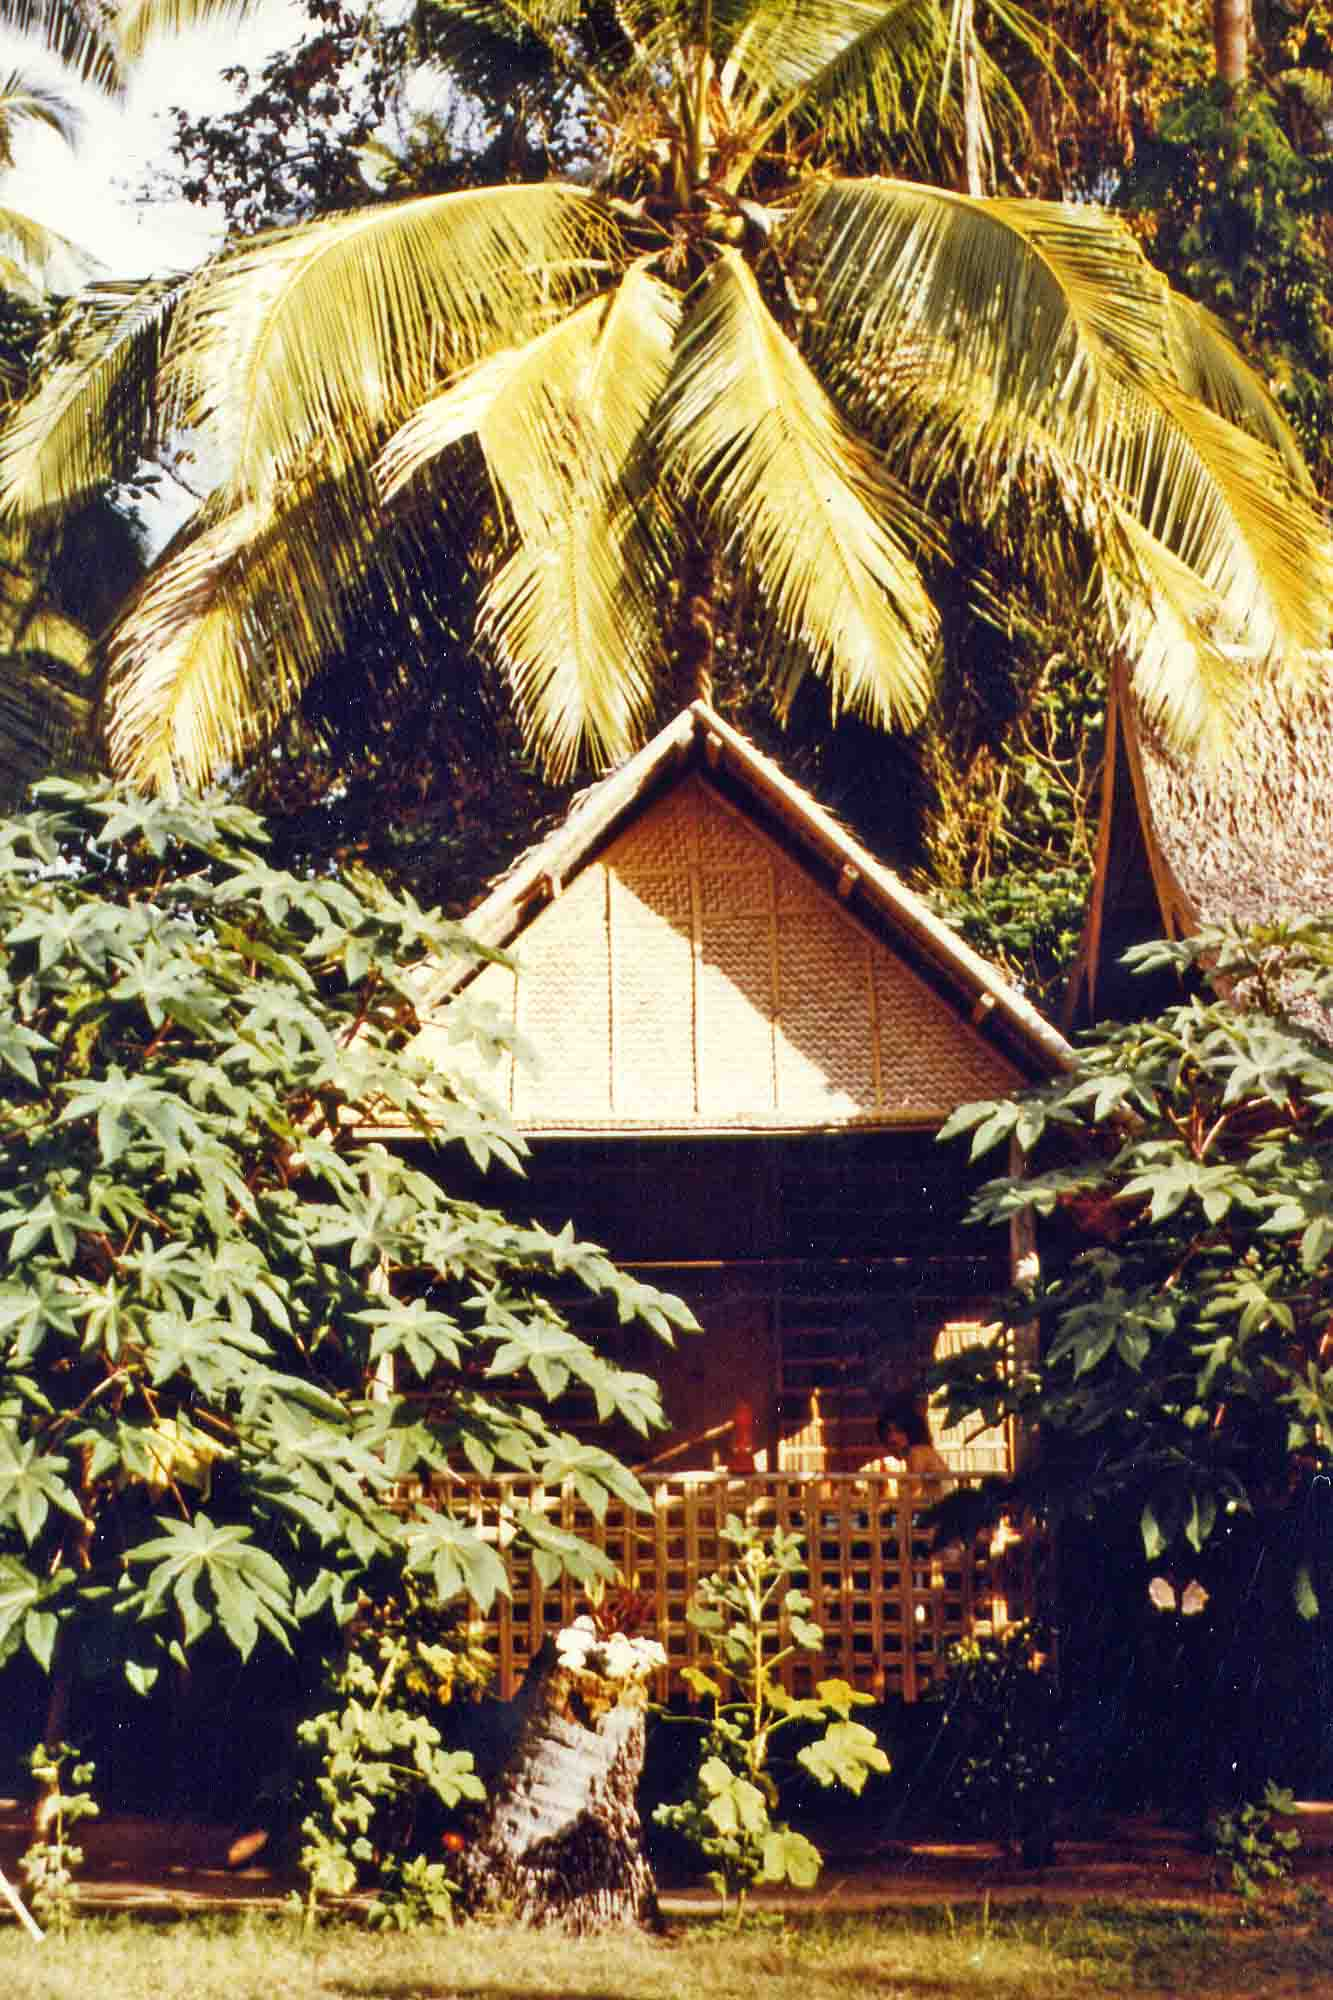 Bunalow on Boracay 1984